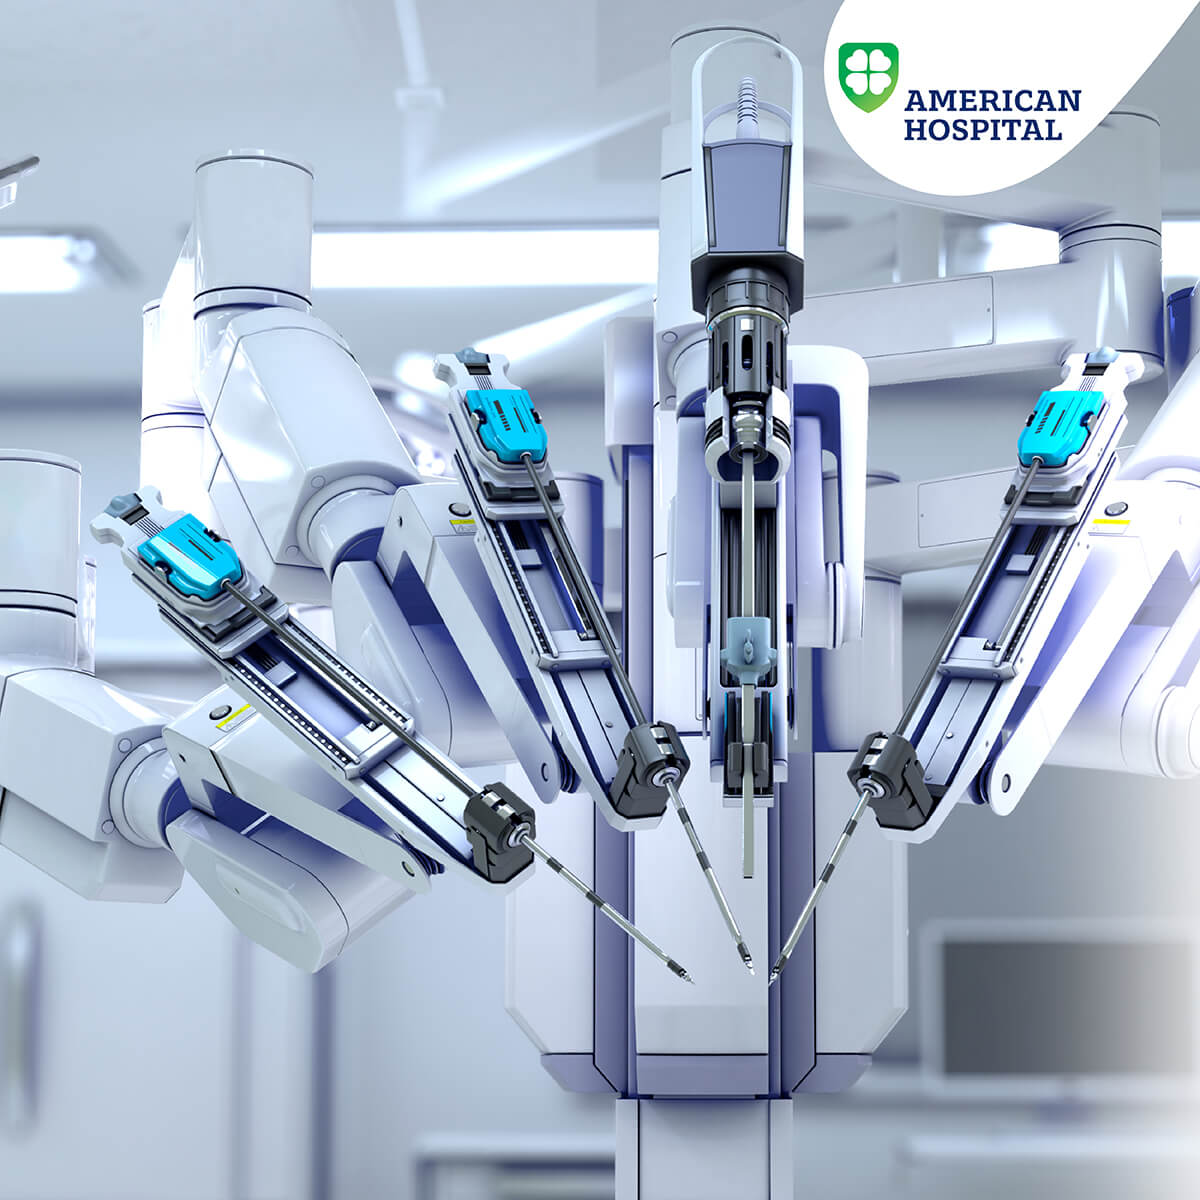 American Hospital Recognized for Excellence with over 100 Successful Robotic Surgeries